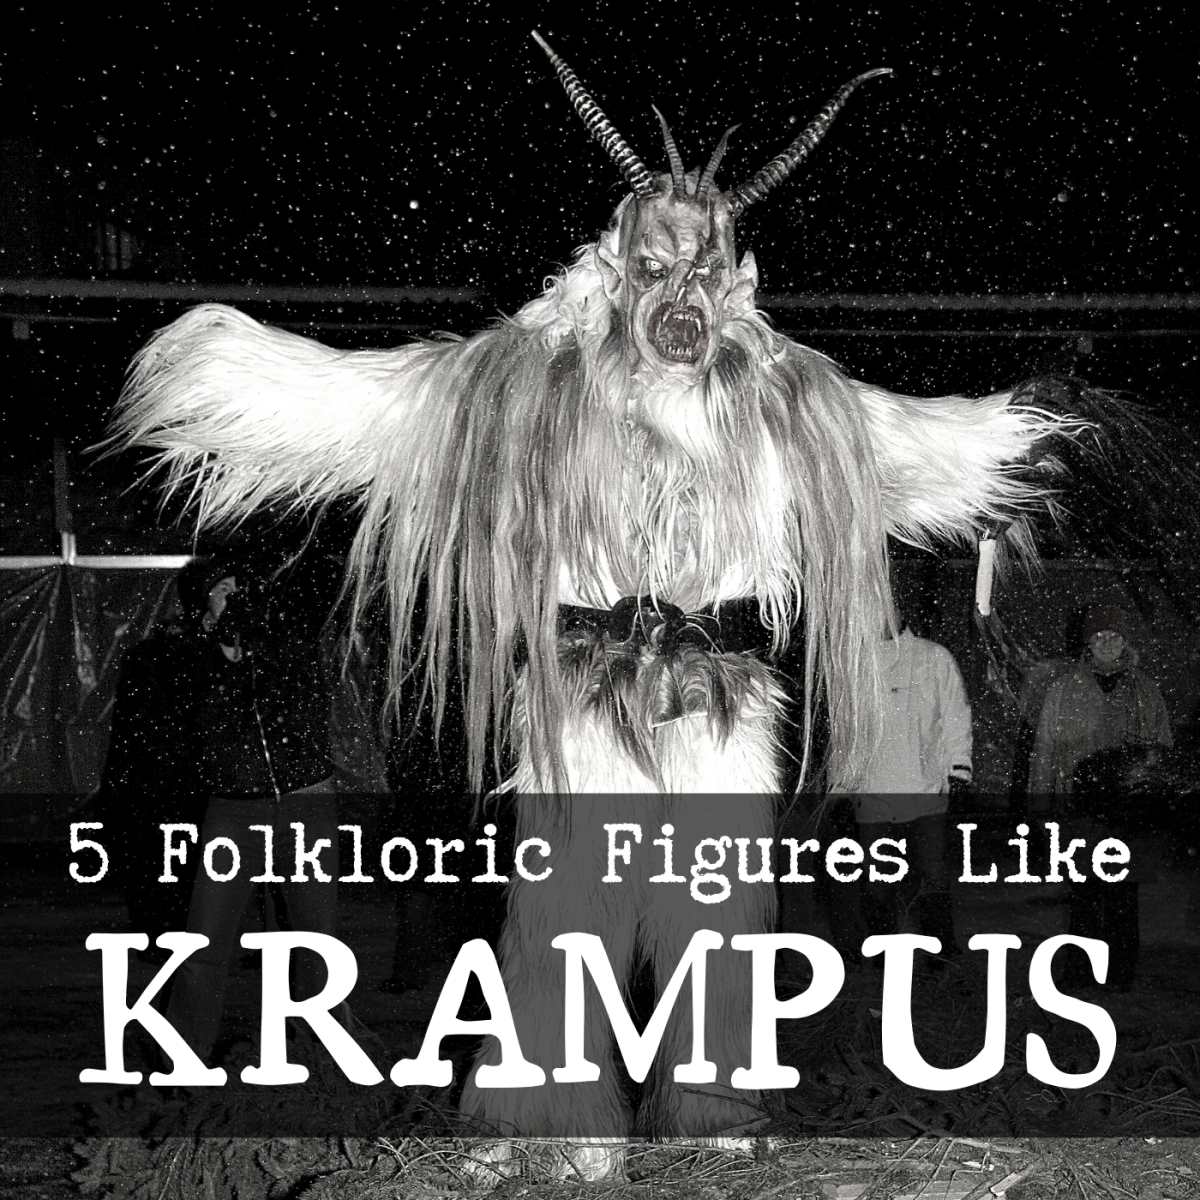 Krampus seems to get all the attention these days, so here are five other creepy, mythological figures that haunt the holiday season.